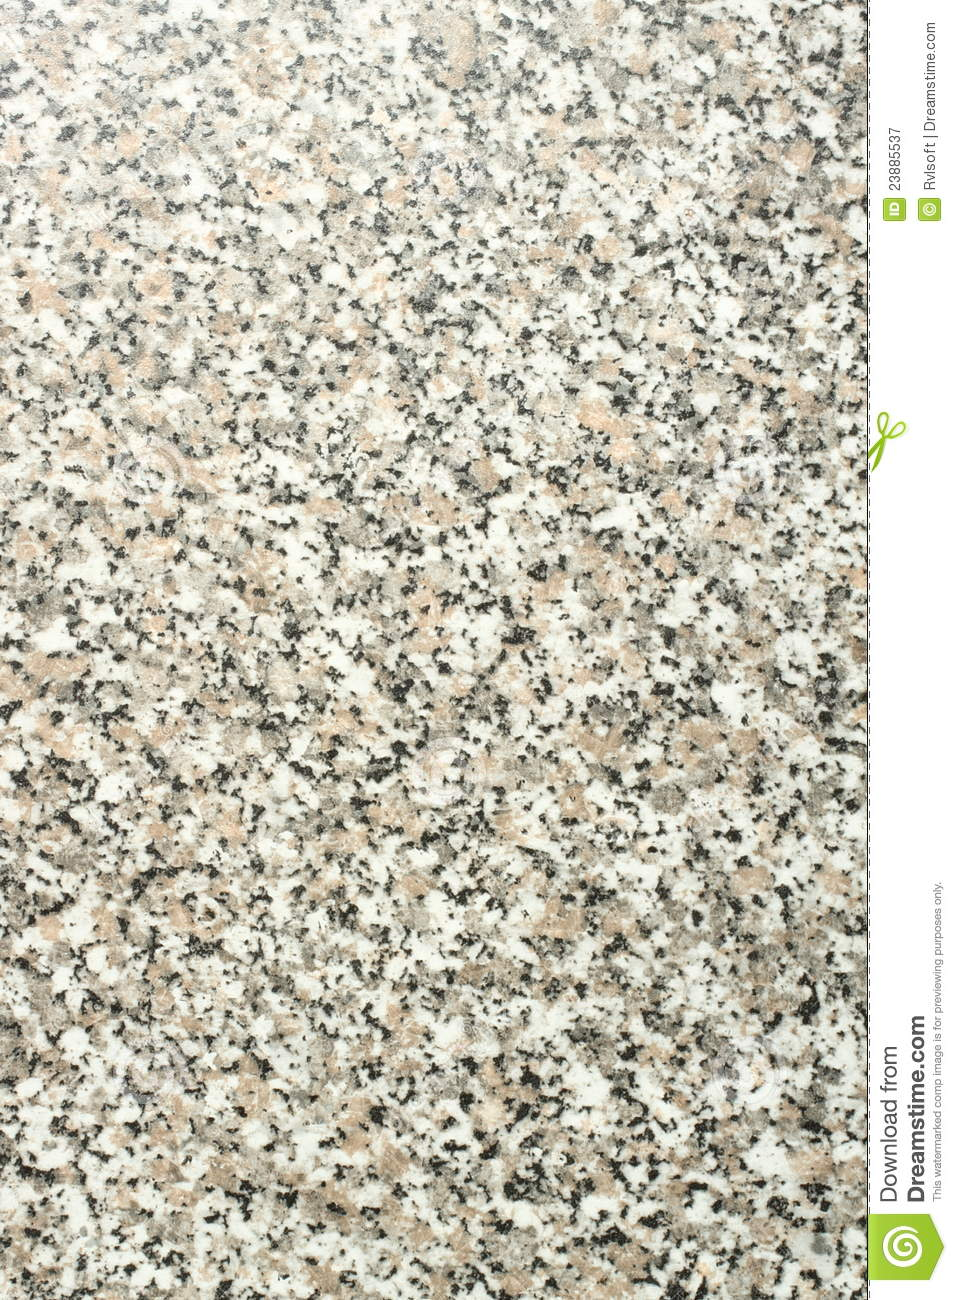 Table top texture - Table Top Texture Royalty Free Stock Photography